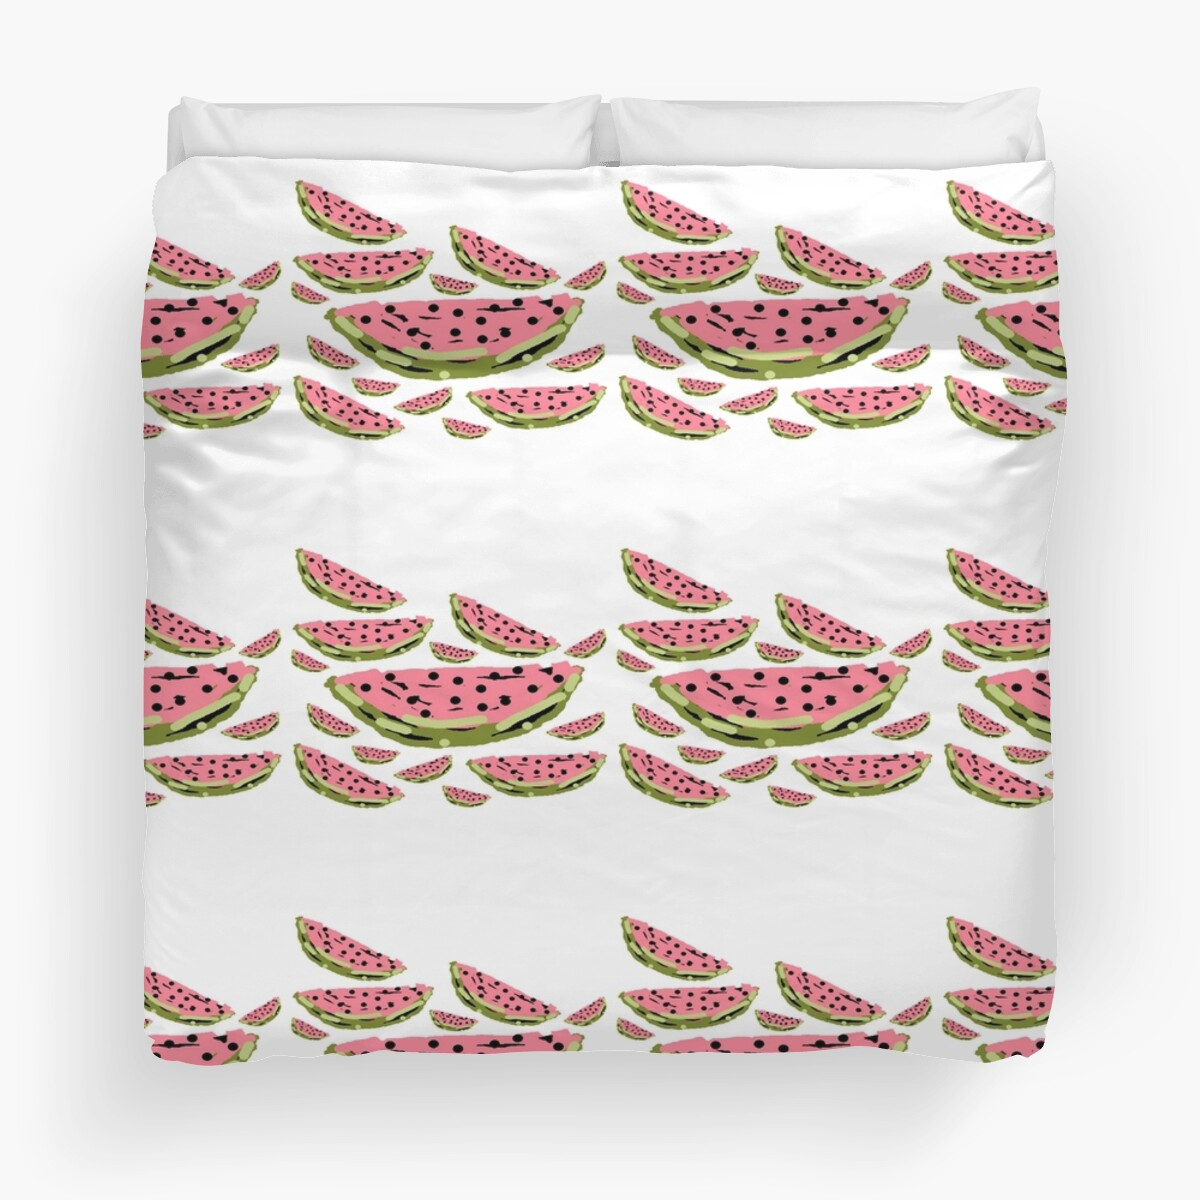 Watermelon Summer pattern by HEVIFineart